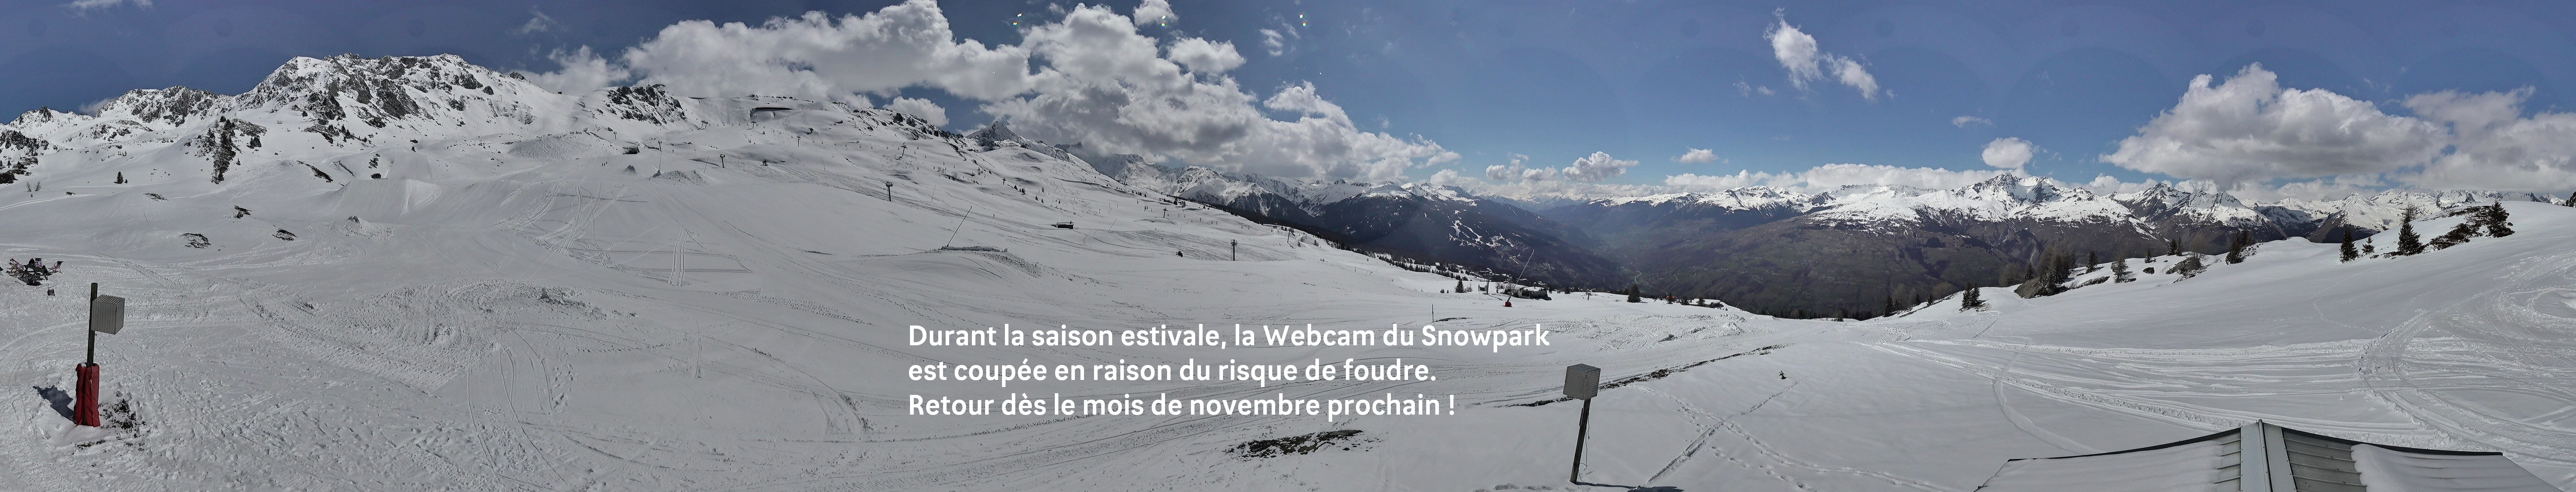 Webcam Snowpark Les Arcs